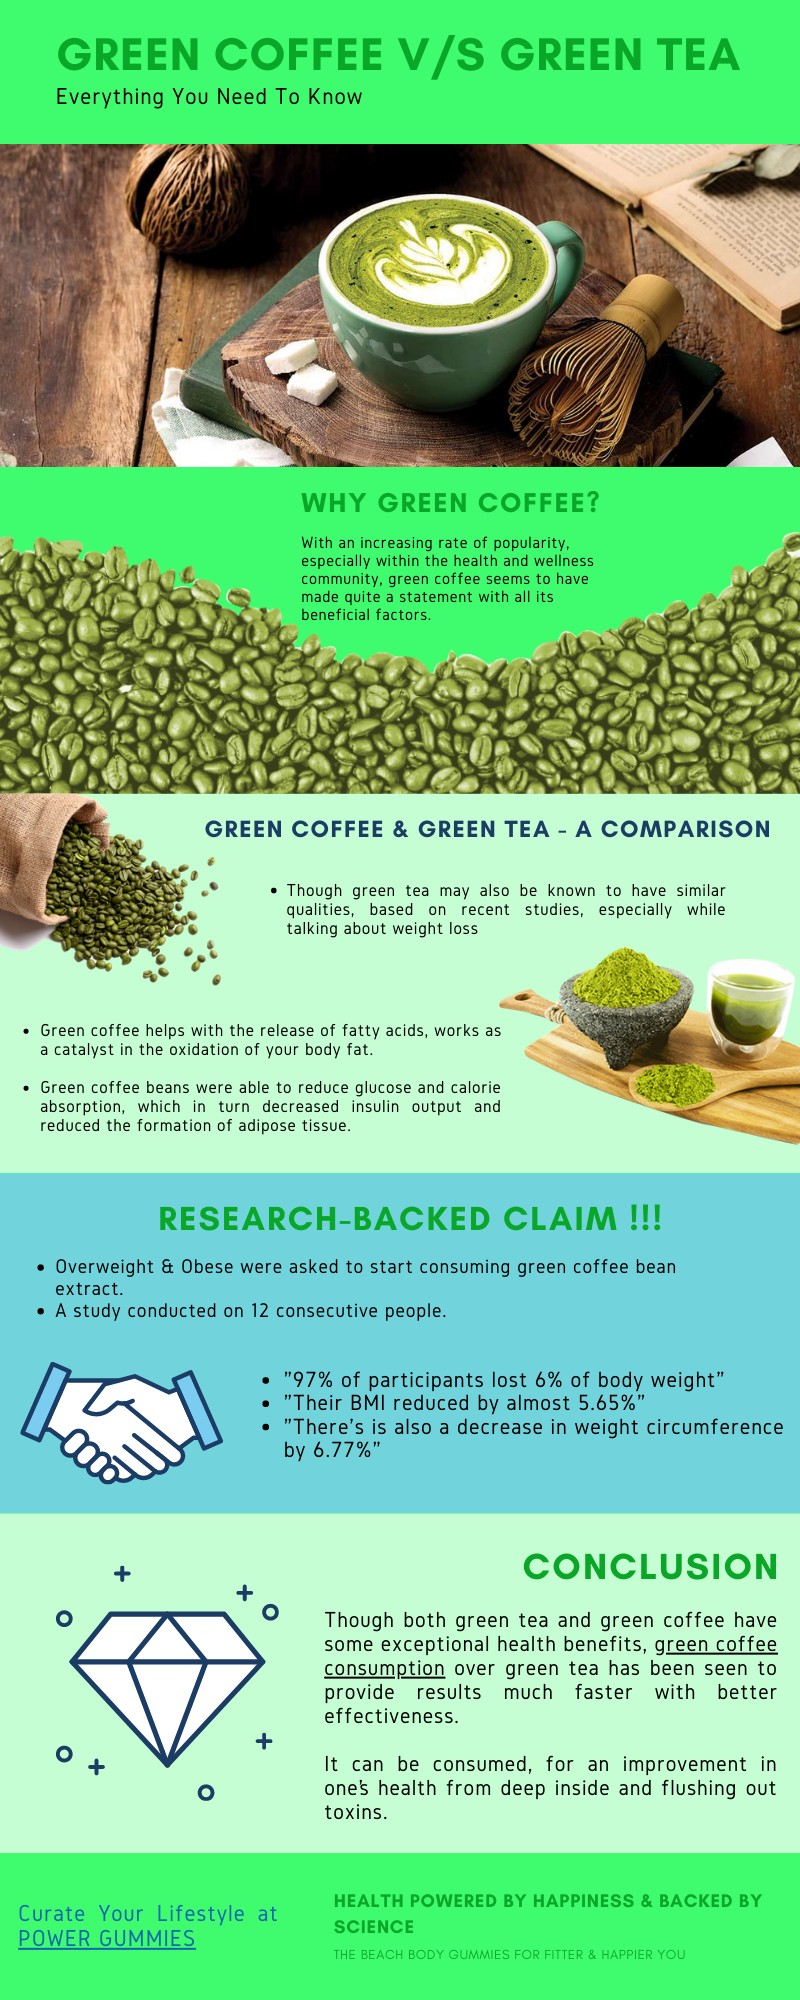 How Green Coffee is better than Green Tea